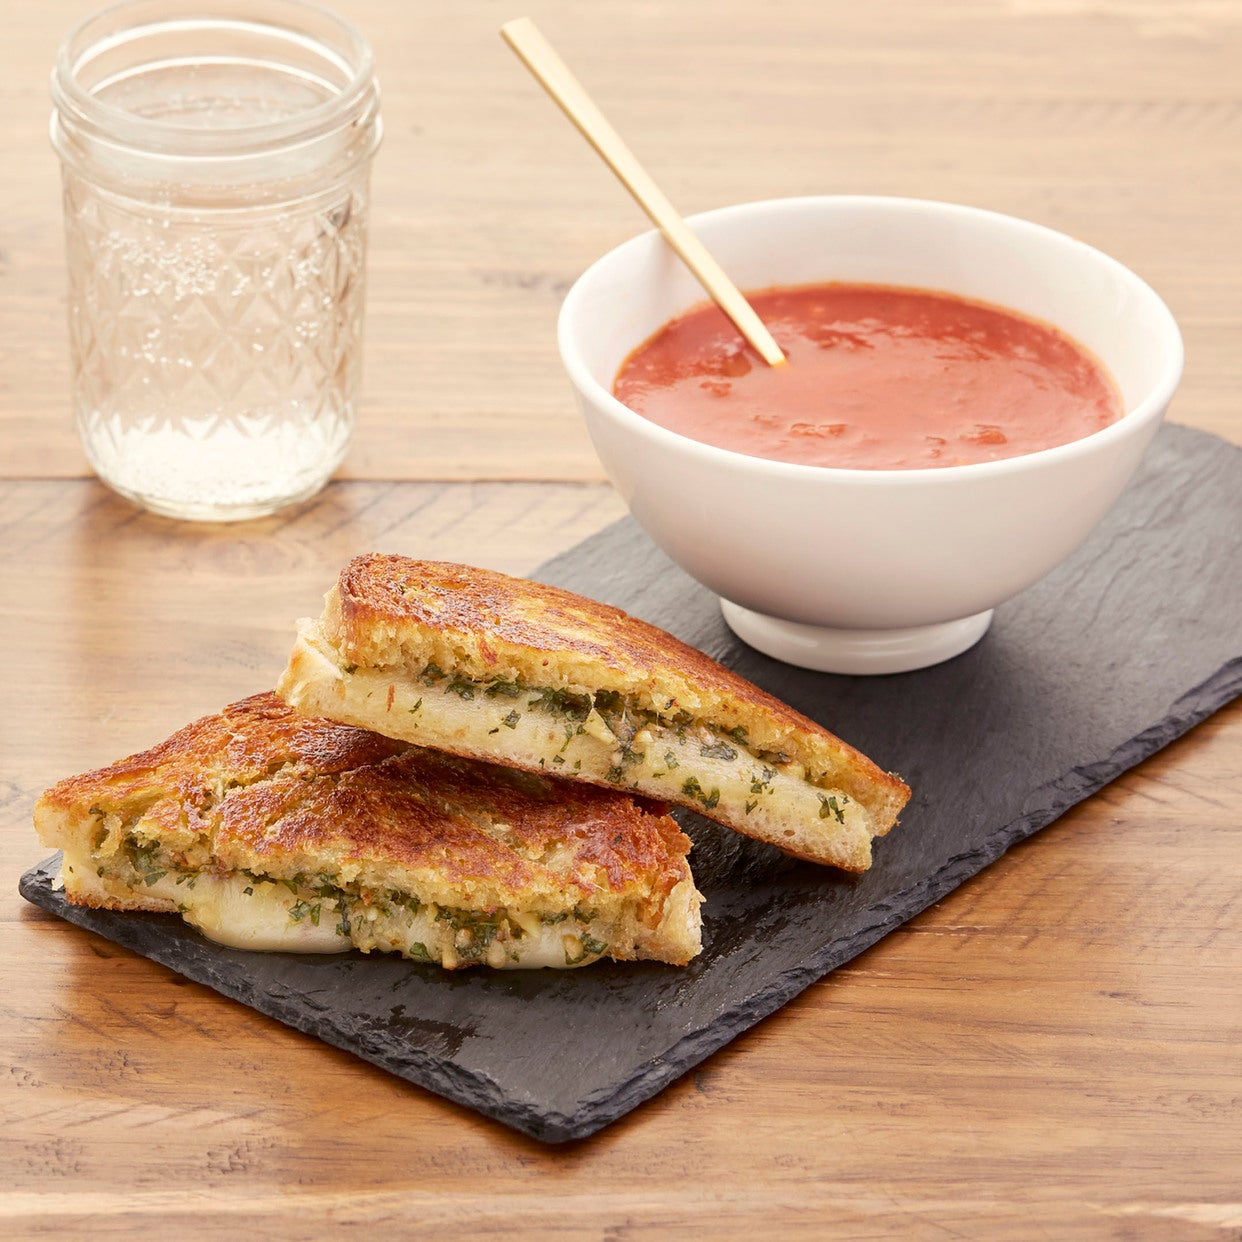 Pesto Grilled Cheese Sandwiches with Spicy Tomato Soup